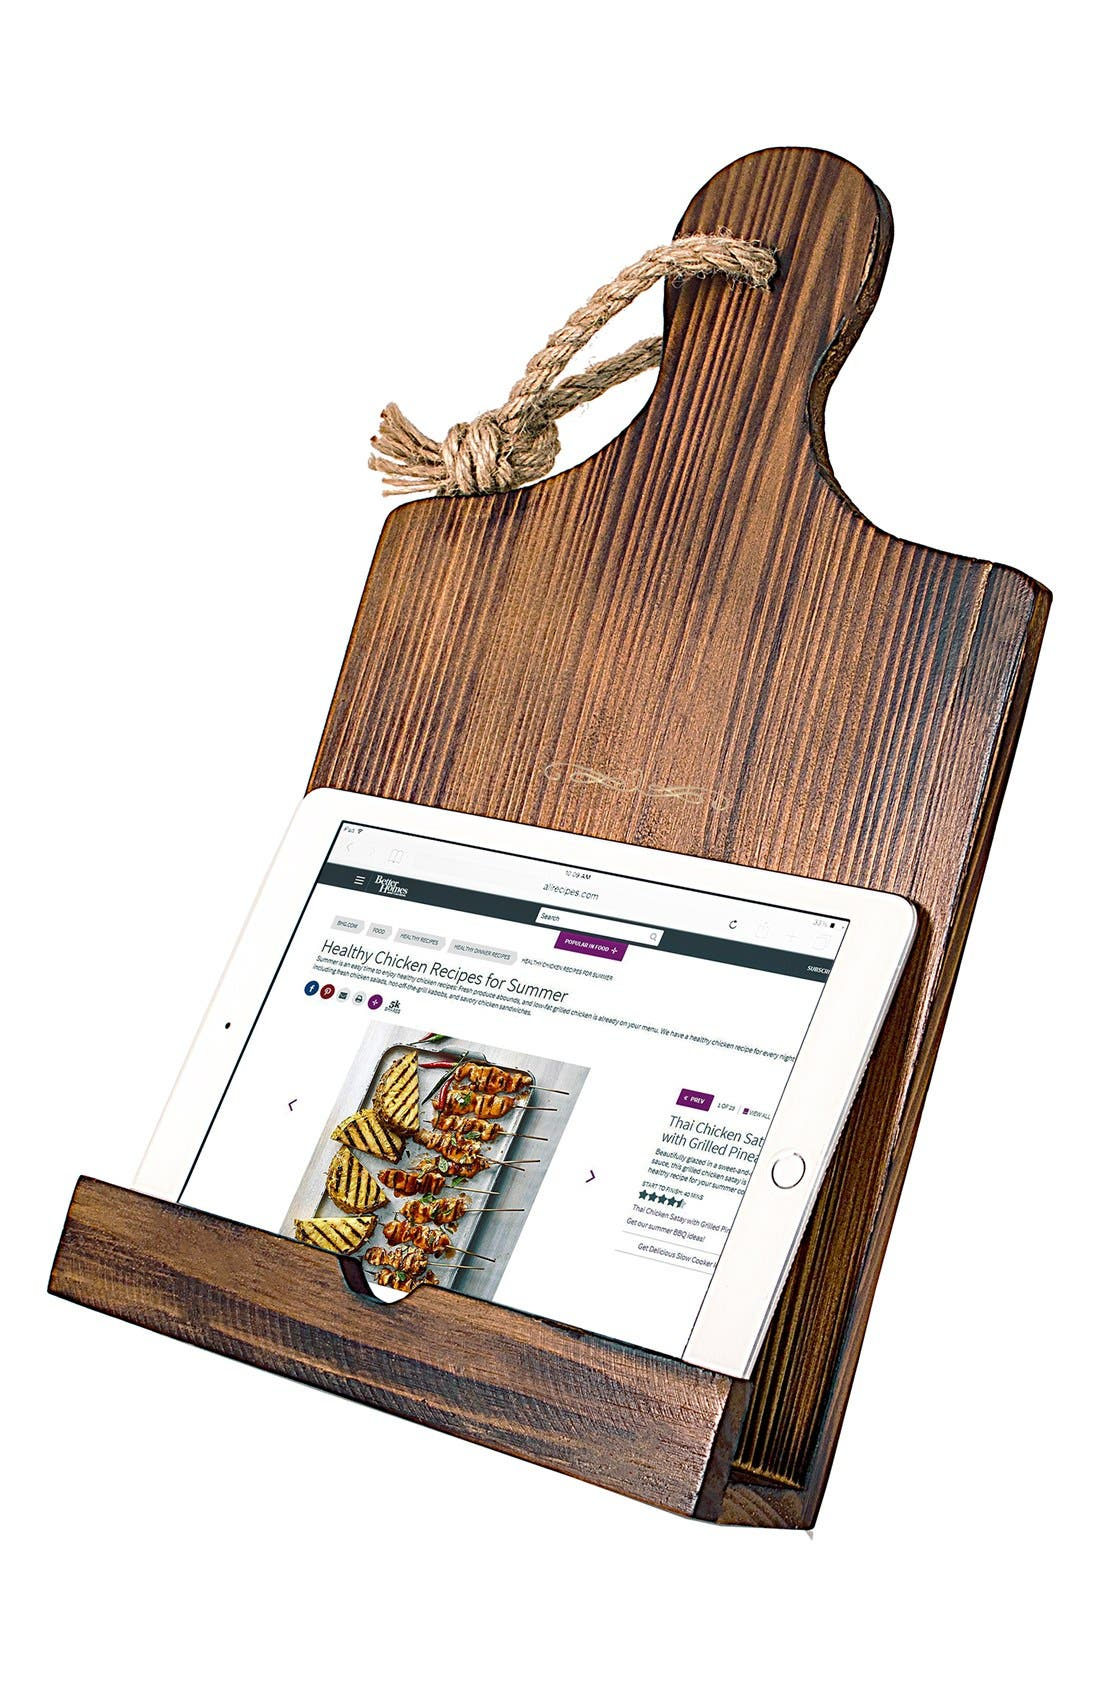 'Mother's Day' Wooden Tablet/Book Stand,                             Alternate thumbnail 3, color,                             Brown